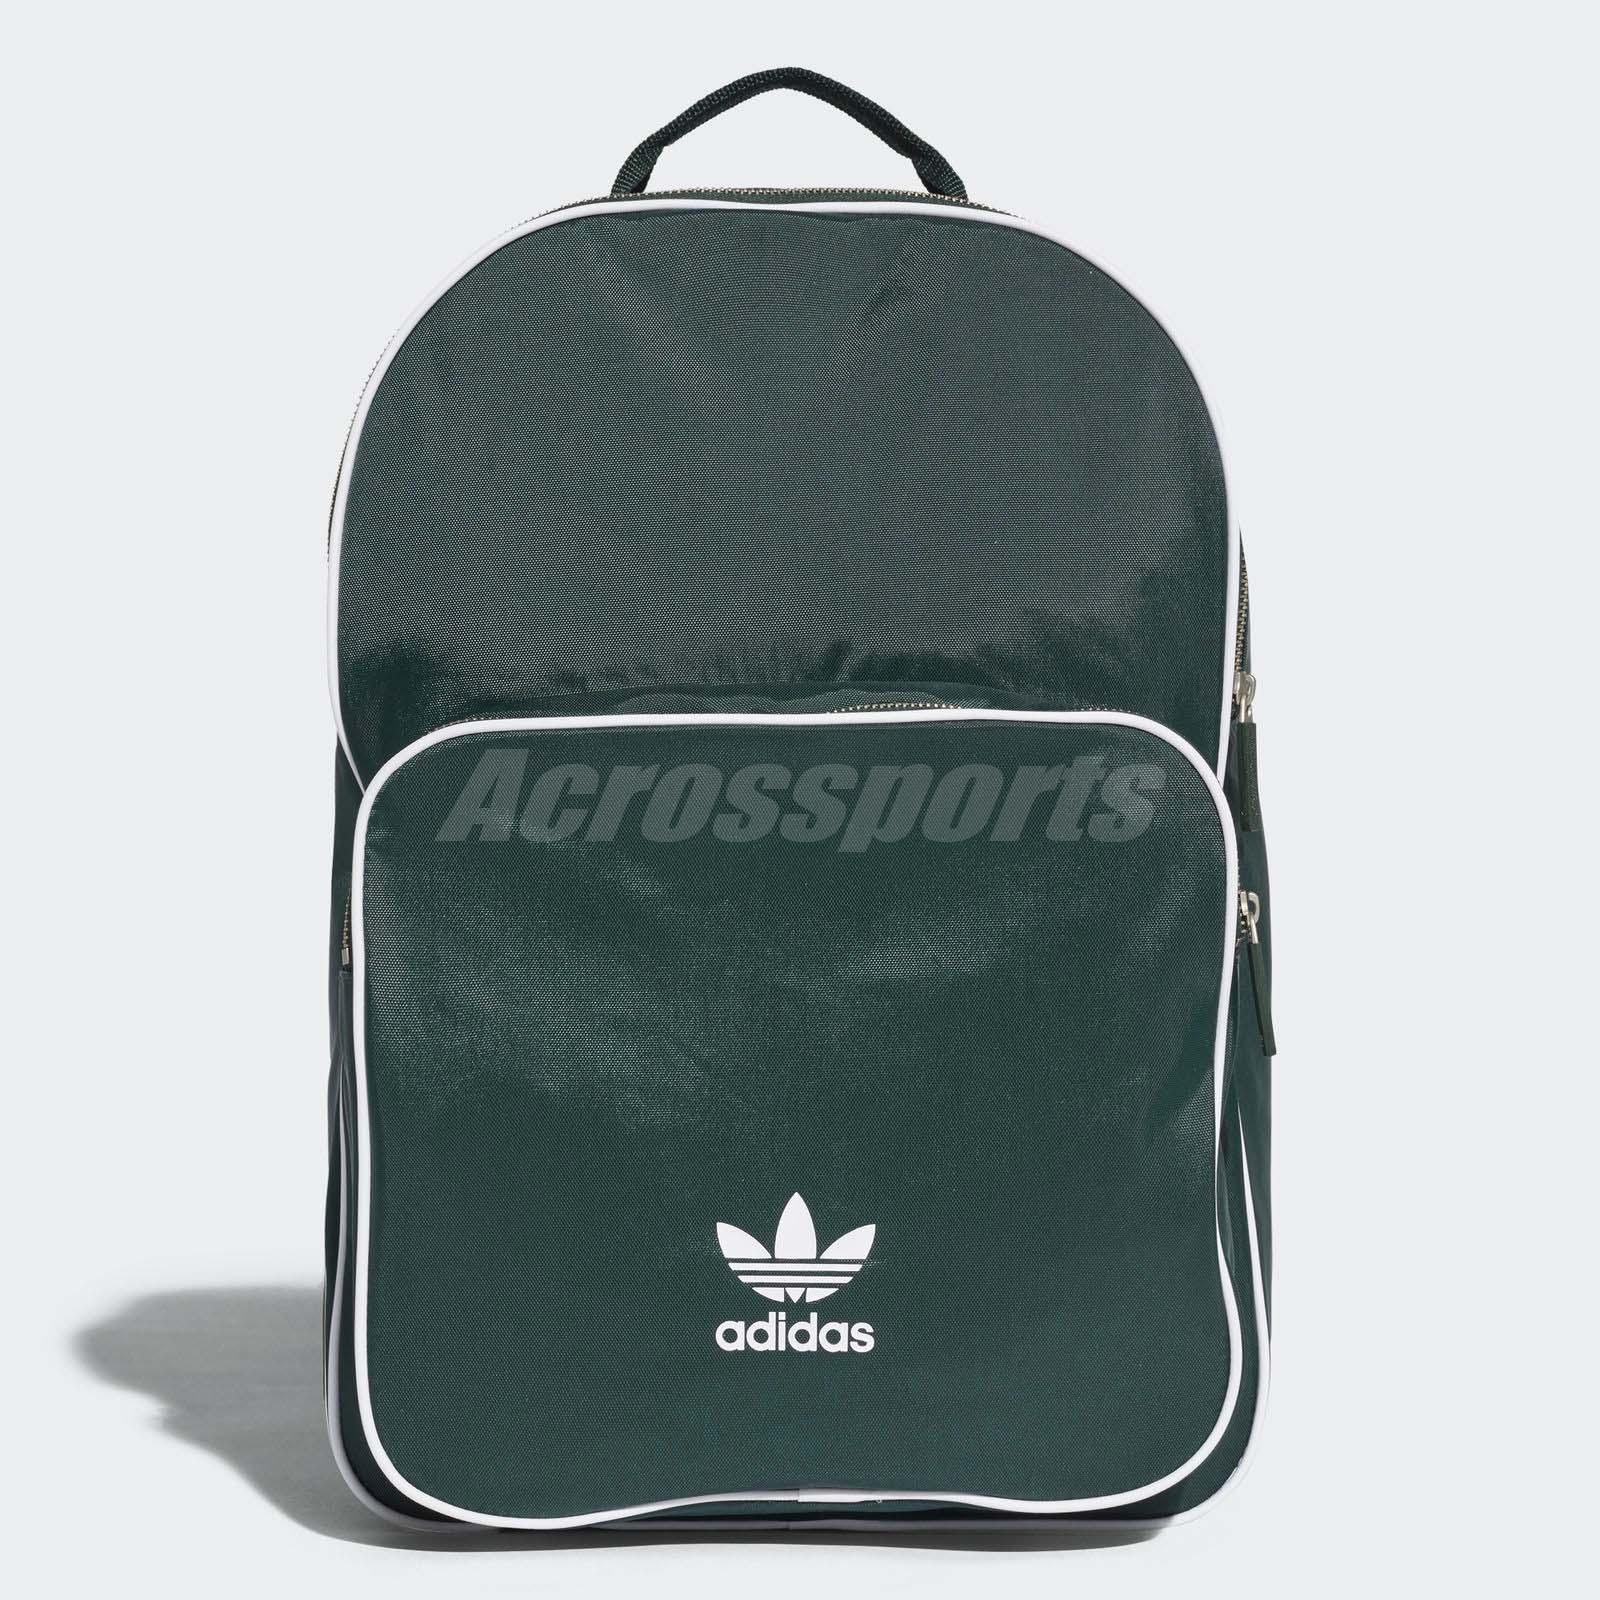 Details about adidas Originals Classic Backpack Green White Trefoil Sports  Bag CW0629 32d7b781f1aa